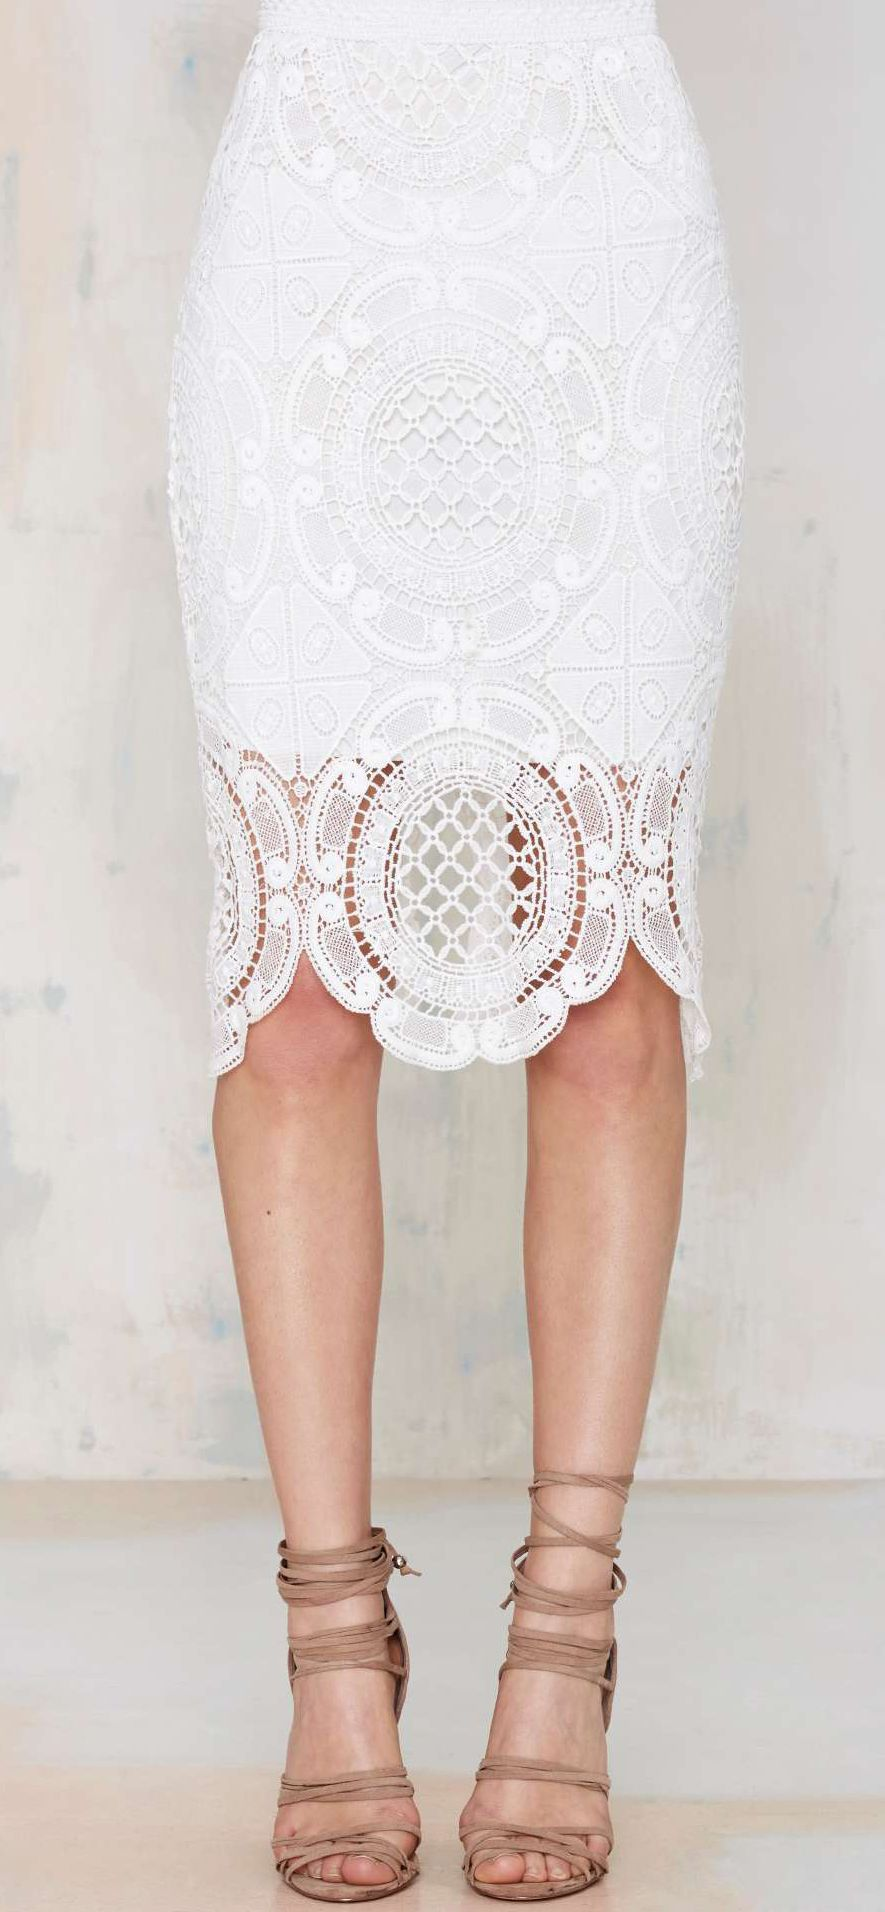 Lace pencil skirt | Style | Pinterest | Pencil skirts, Clothes and ...